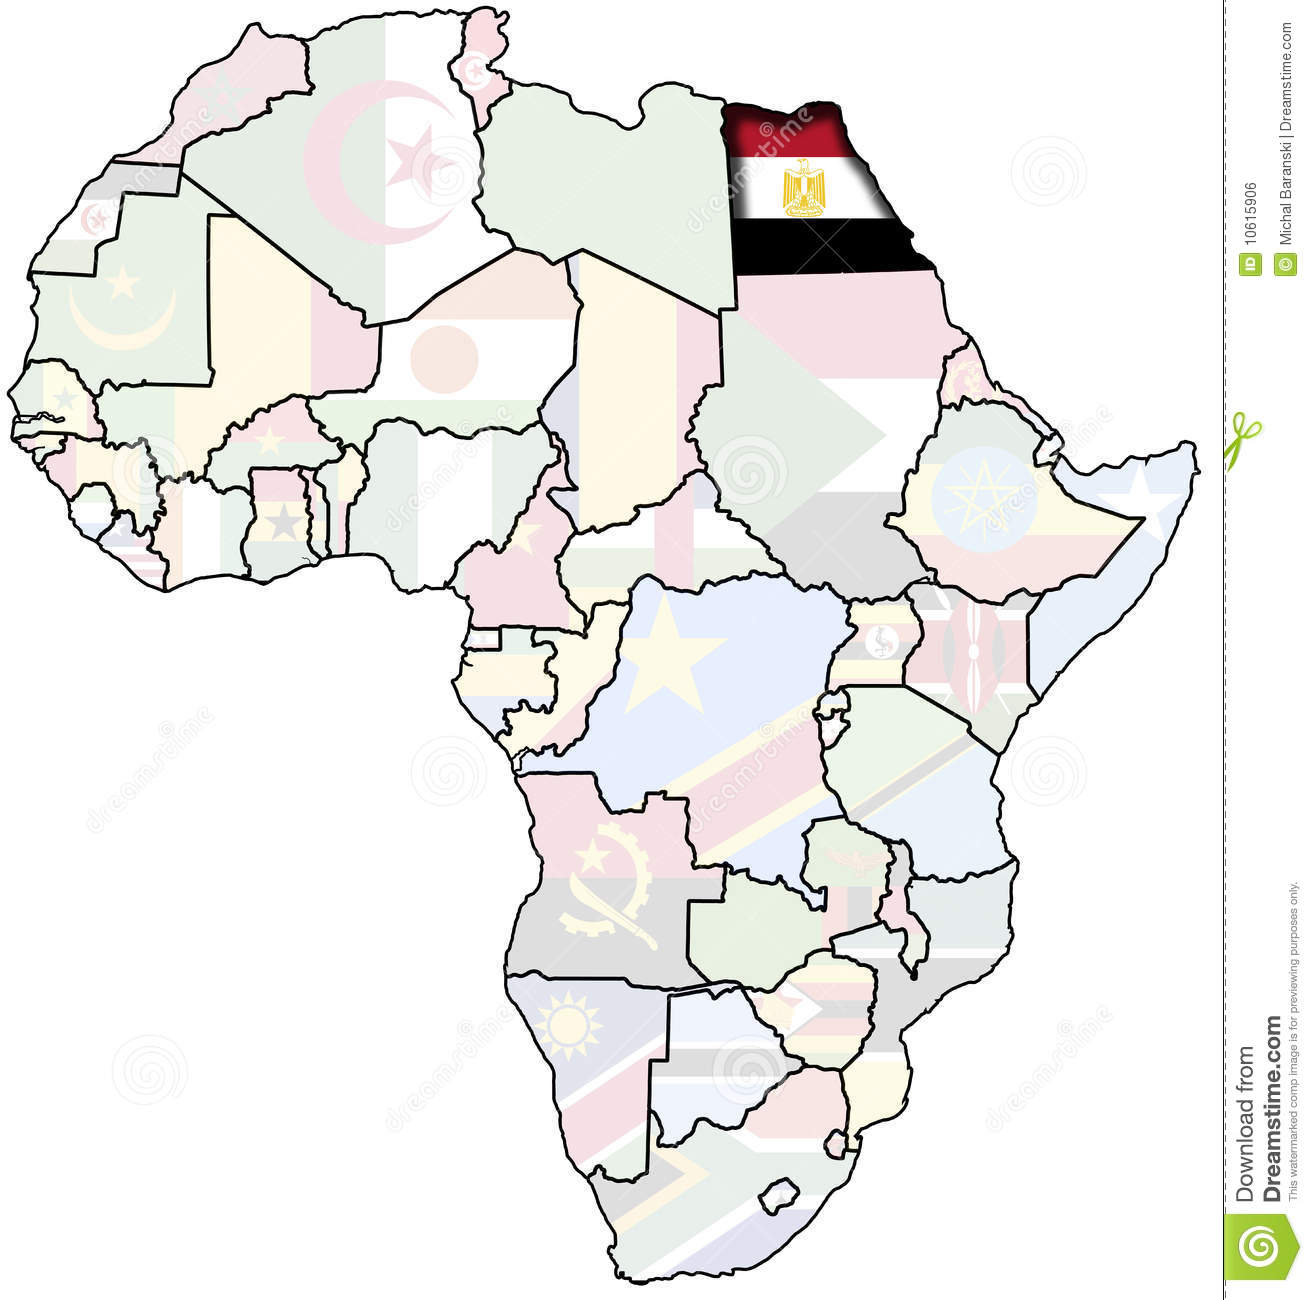 Egypt On Africa Map Royalty Free Stock Image Image - Map of egypt free download